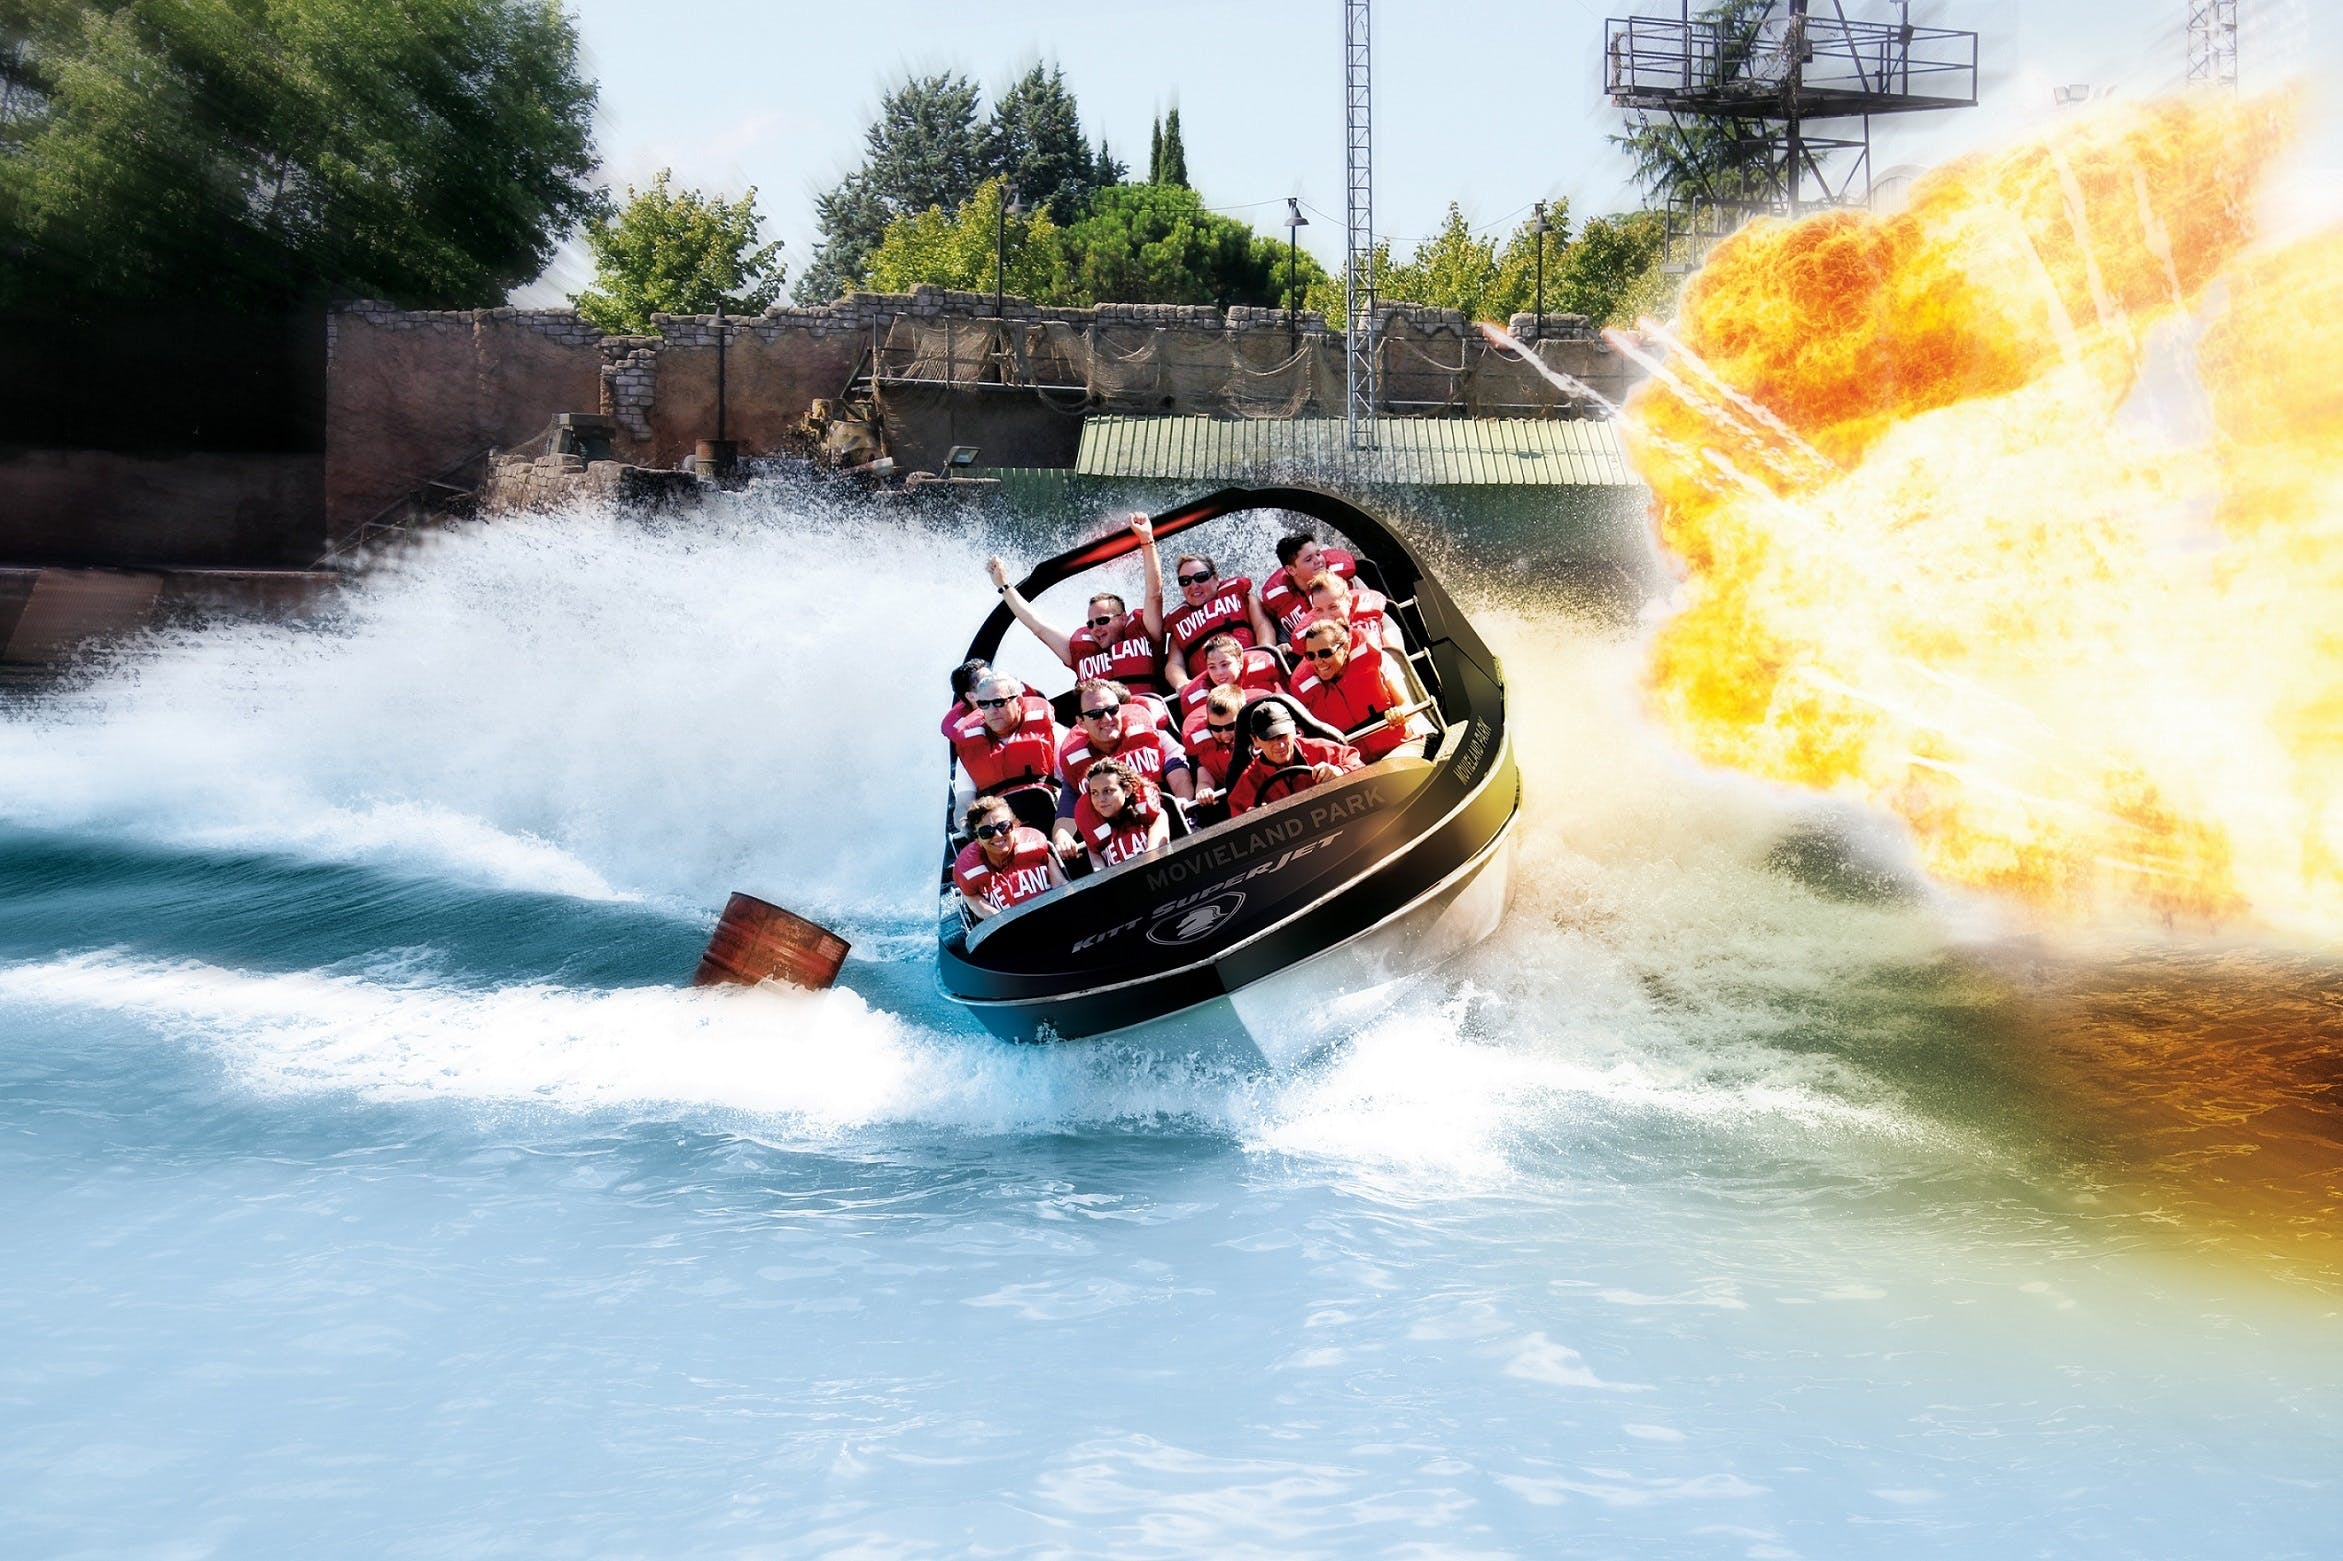 Open tickets for Caneva World and Movieland Park for 1, 2 or 7 days